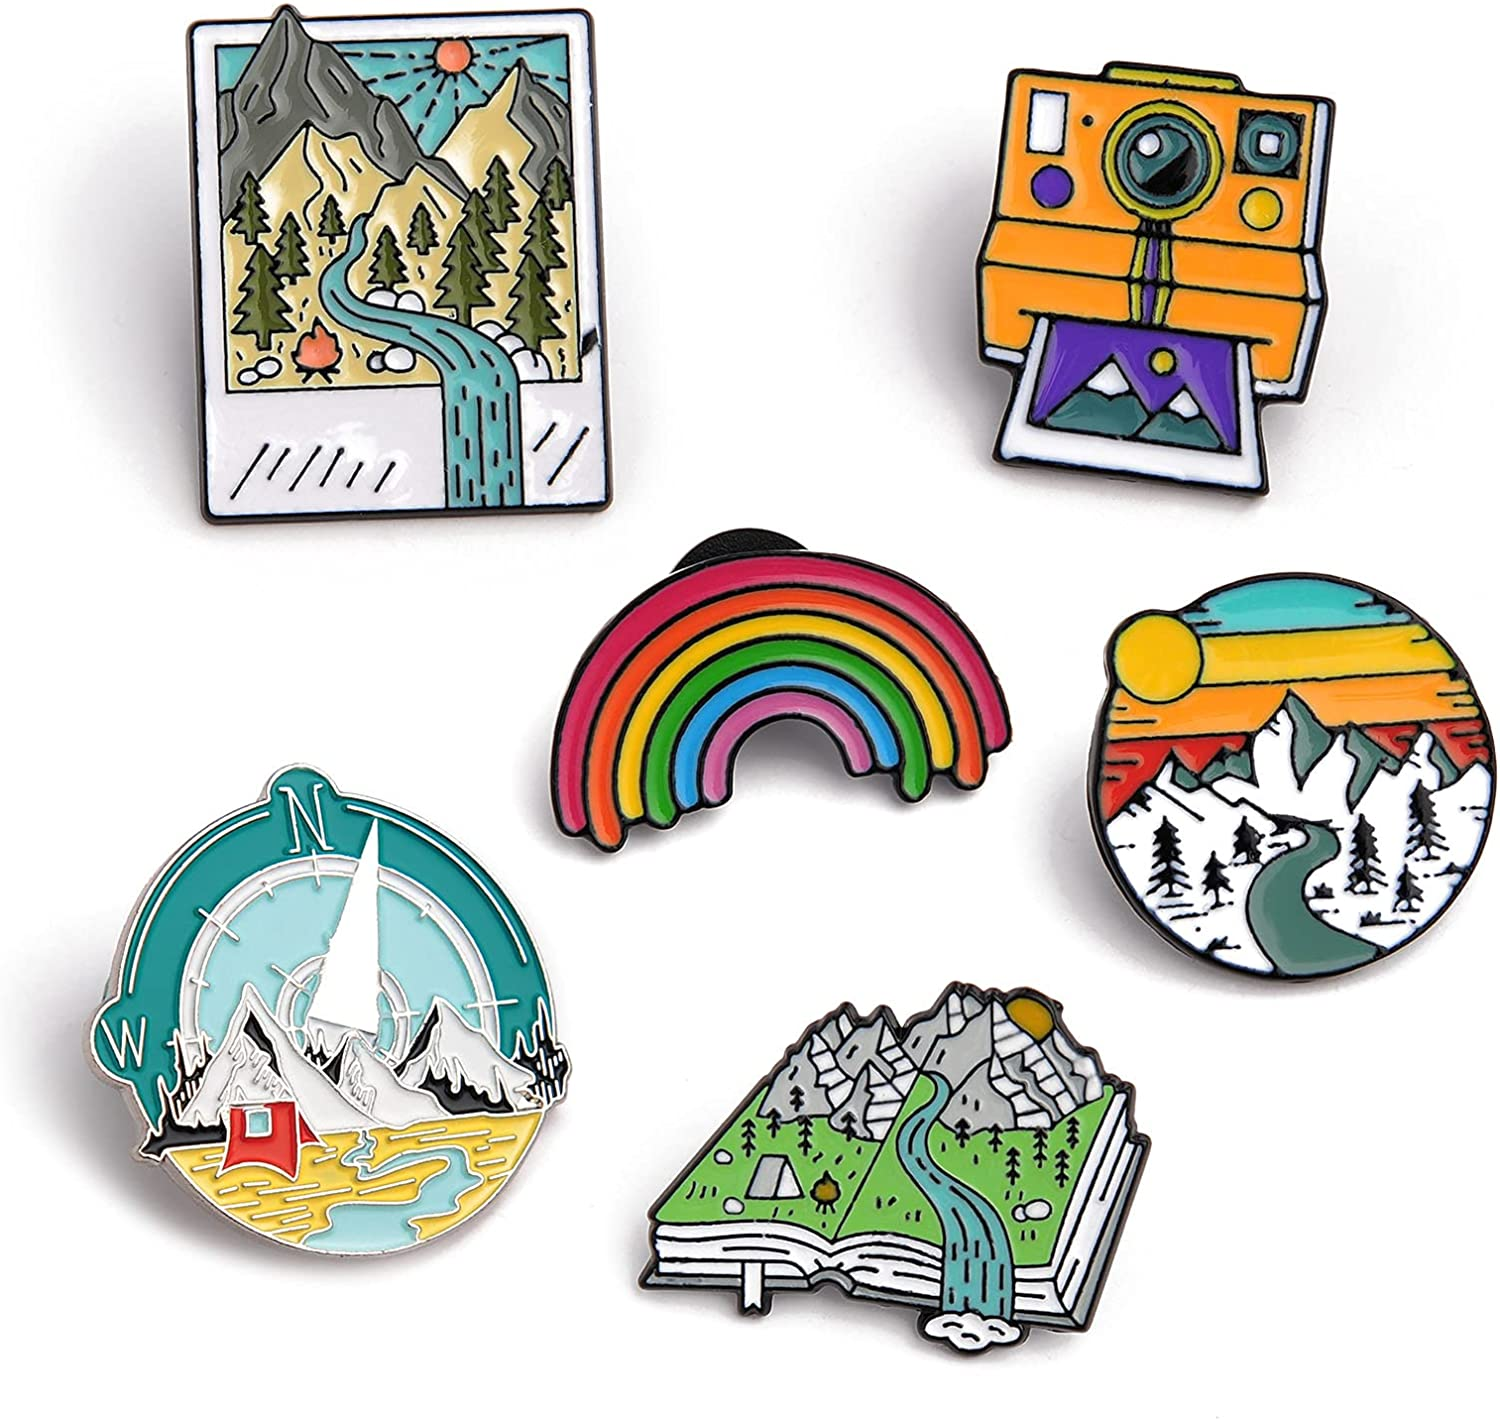 Novelty Outdoors Enamel Lapel Brooch Pin Set, Hiking Memorial Metal Assorted Lapel Pins Accessories Decorative Badges for Backpacks, Cute Jewelry Gift